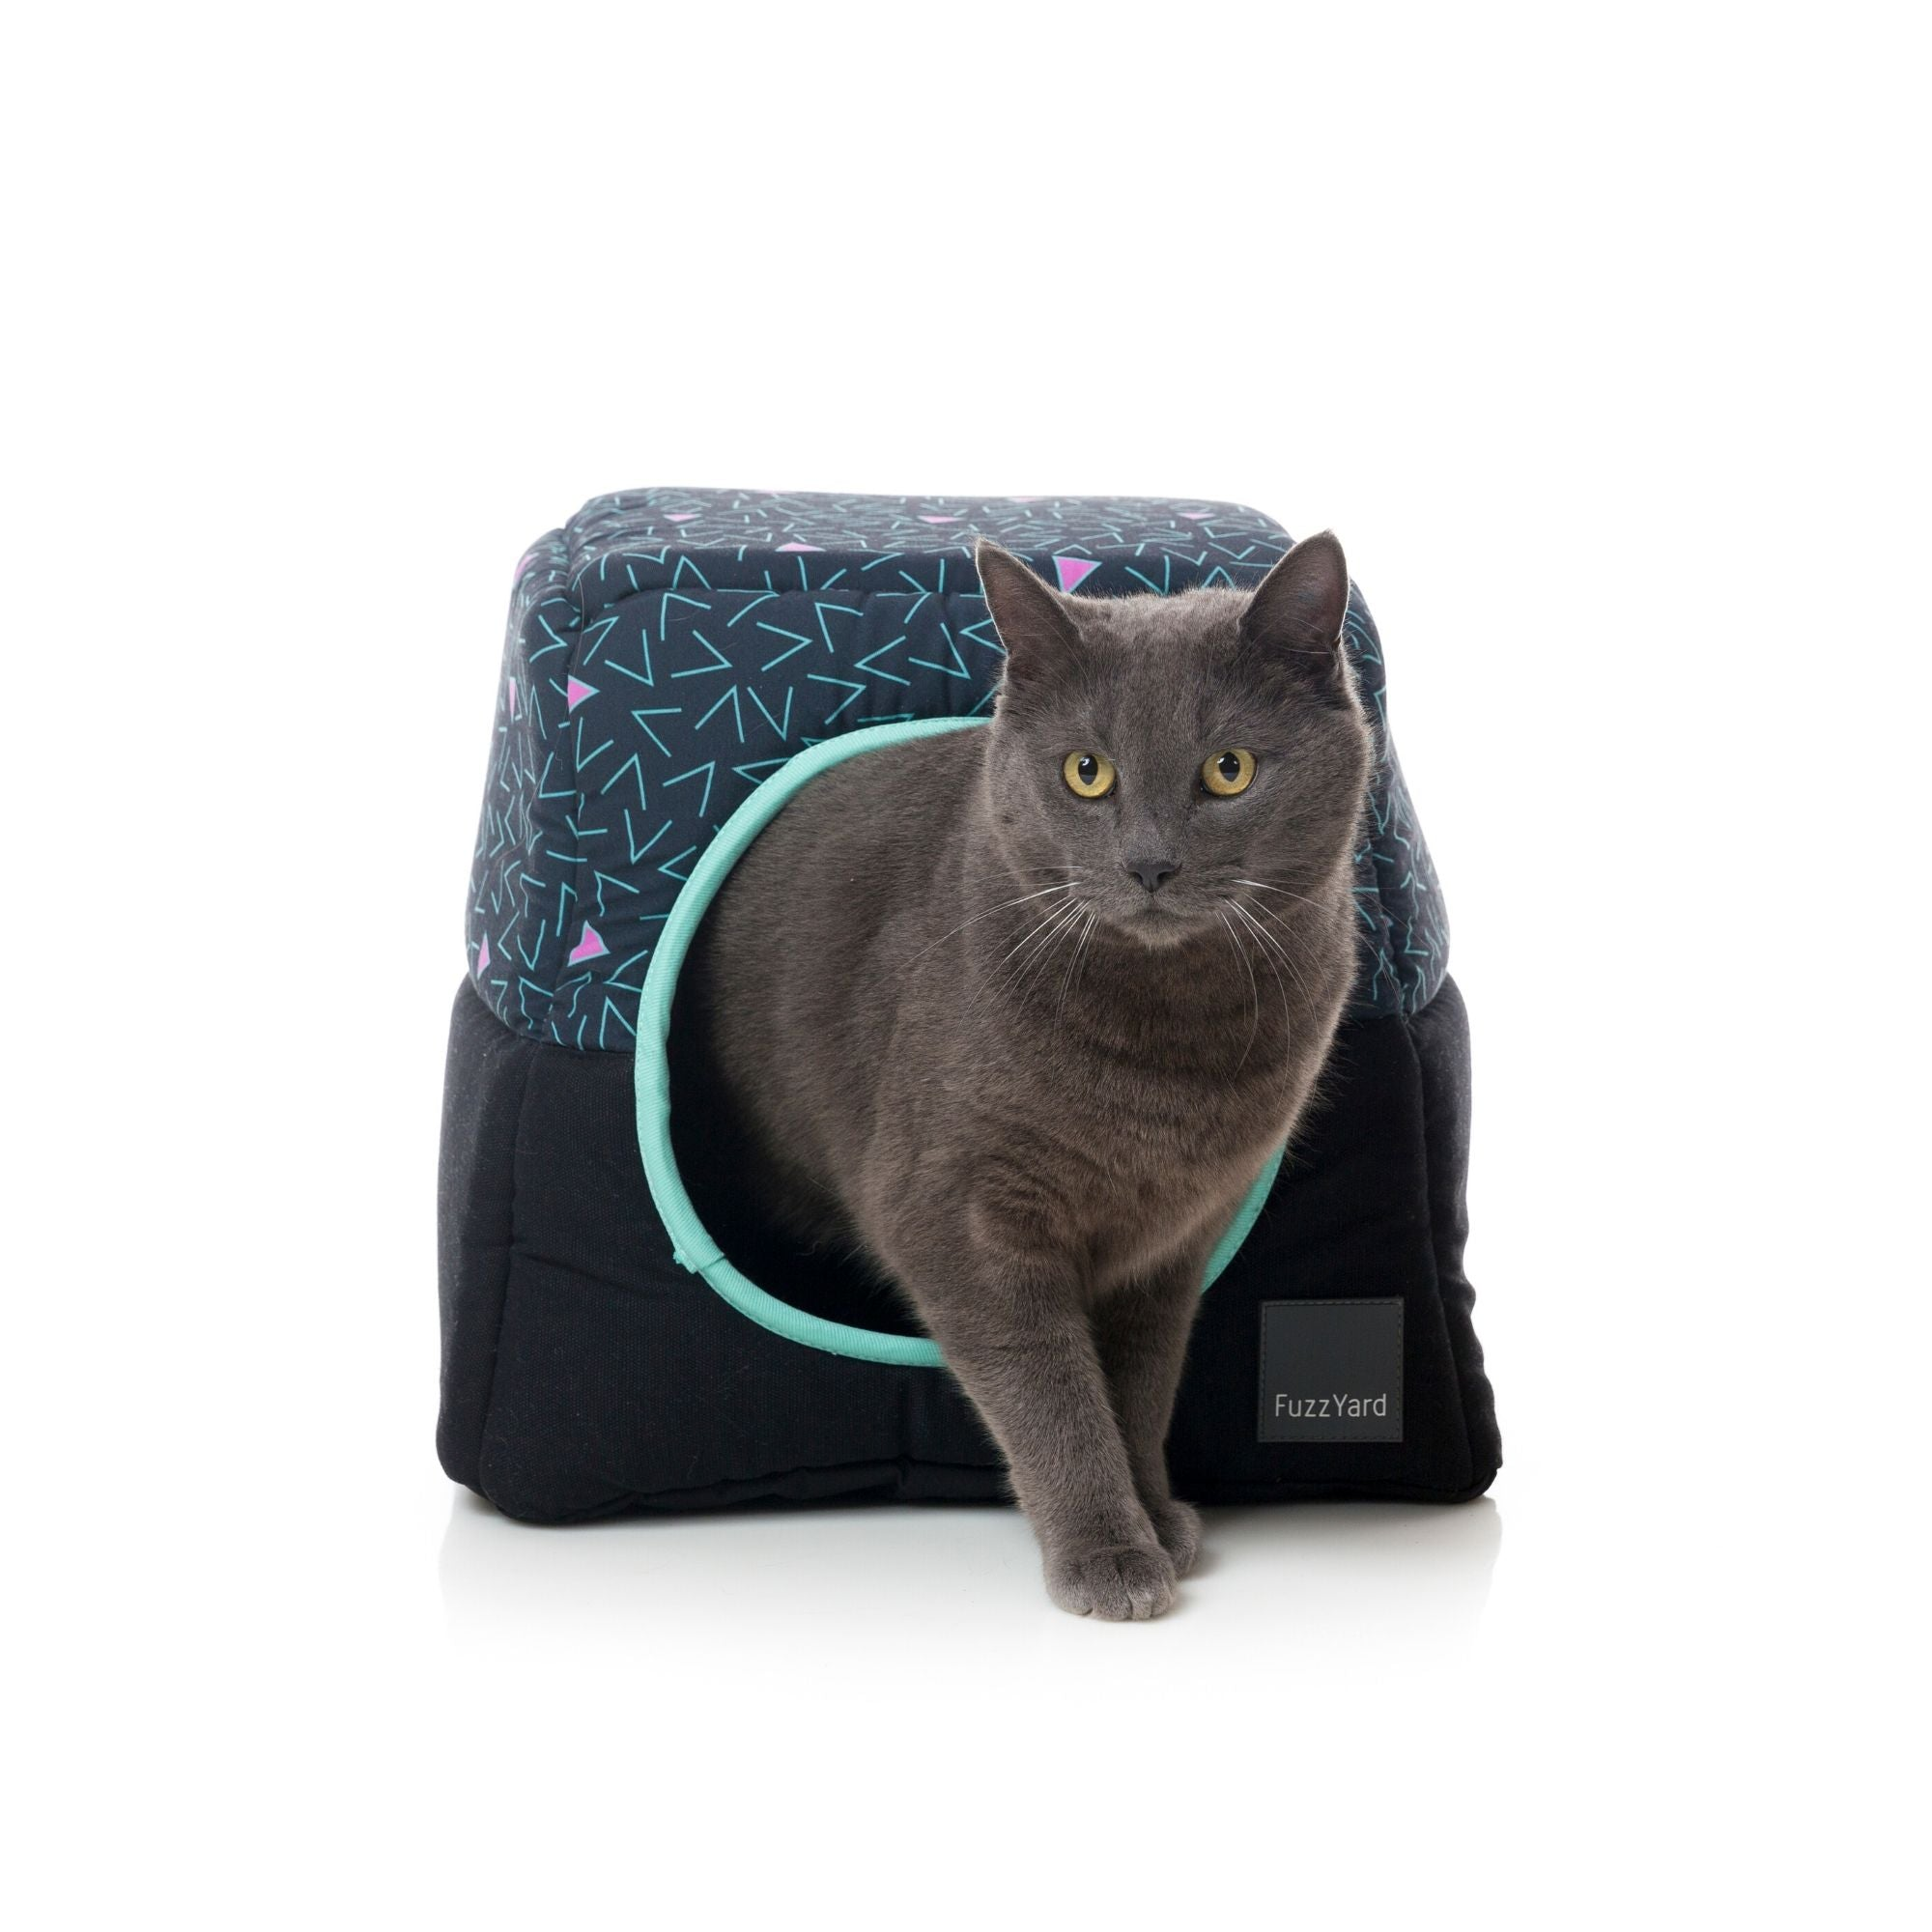 Fuzzyard Voltage Cat Cubby, Designer Cat Bed | Barks & Bunnies